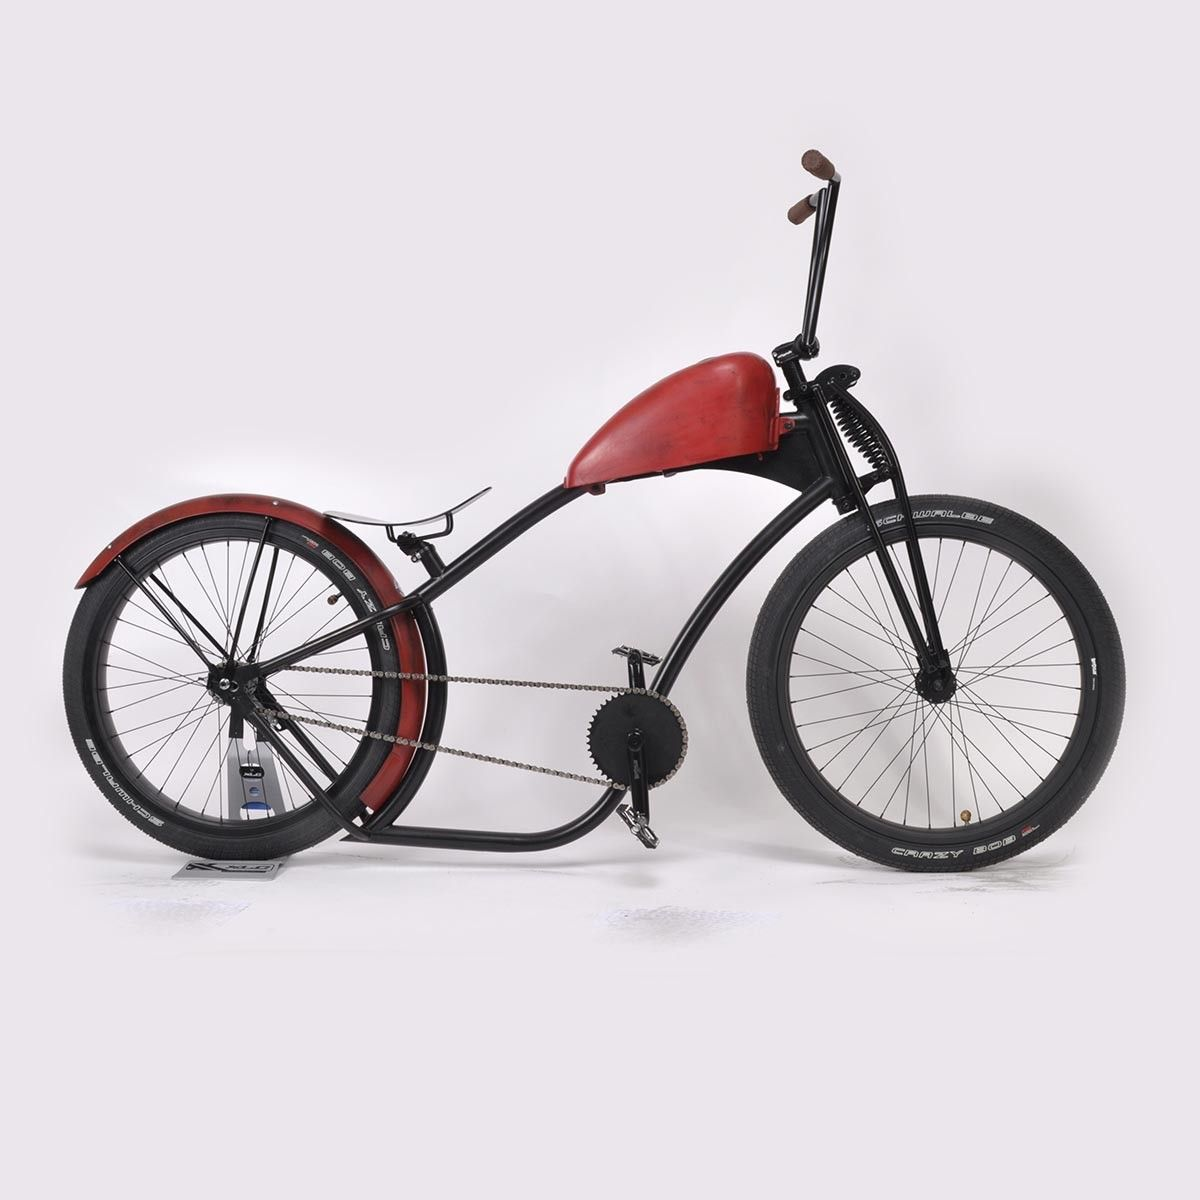 Ruff The Gent Hard Time Przykladowy Rower Custom Powered By Bst Lowrider Bike Low Rider Bike Bicycles Custom Bicycle